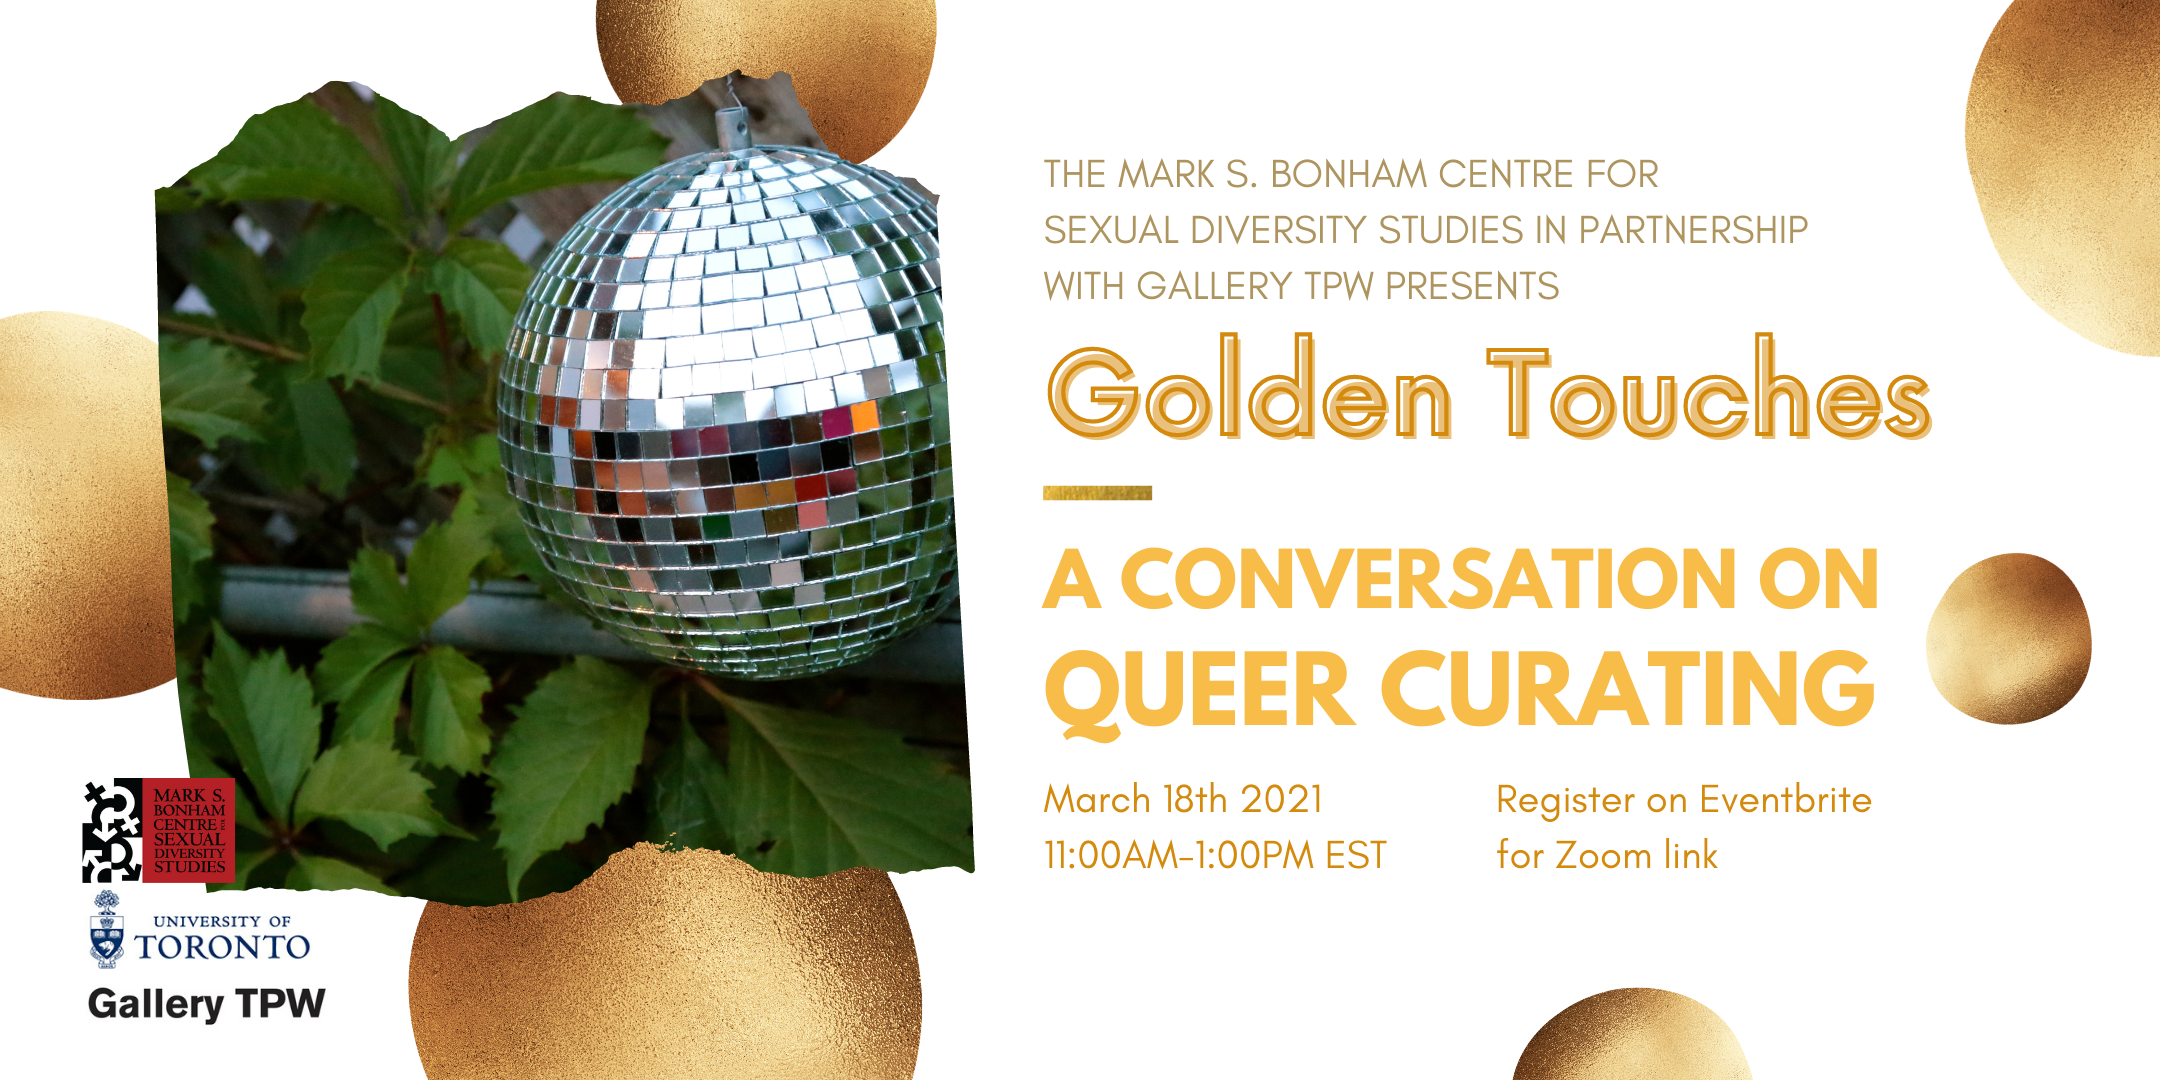 Golden Touches: A Conversation on Queer Curating